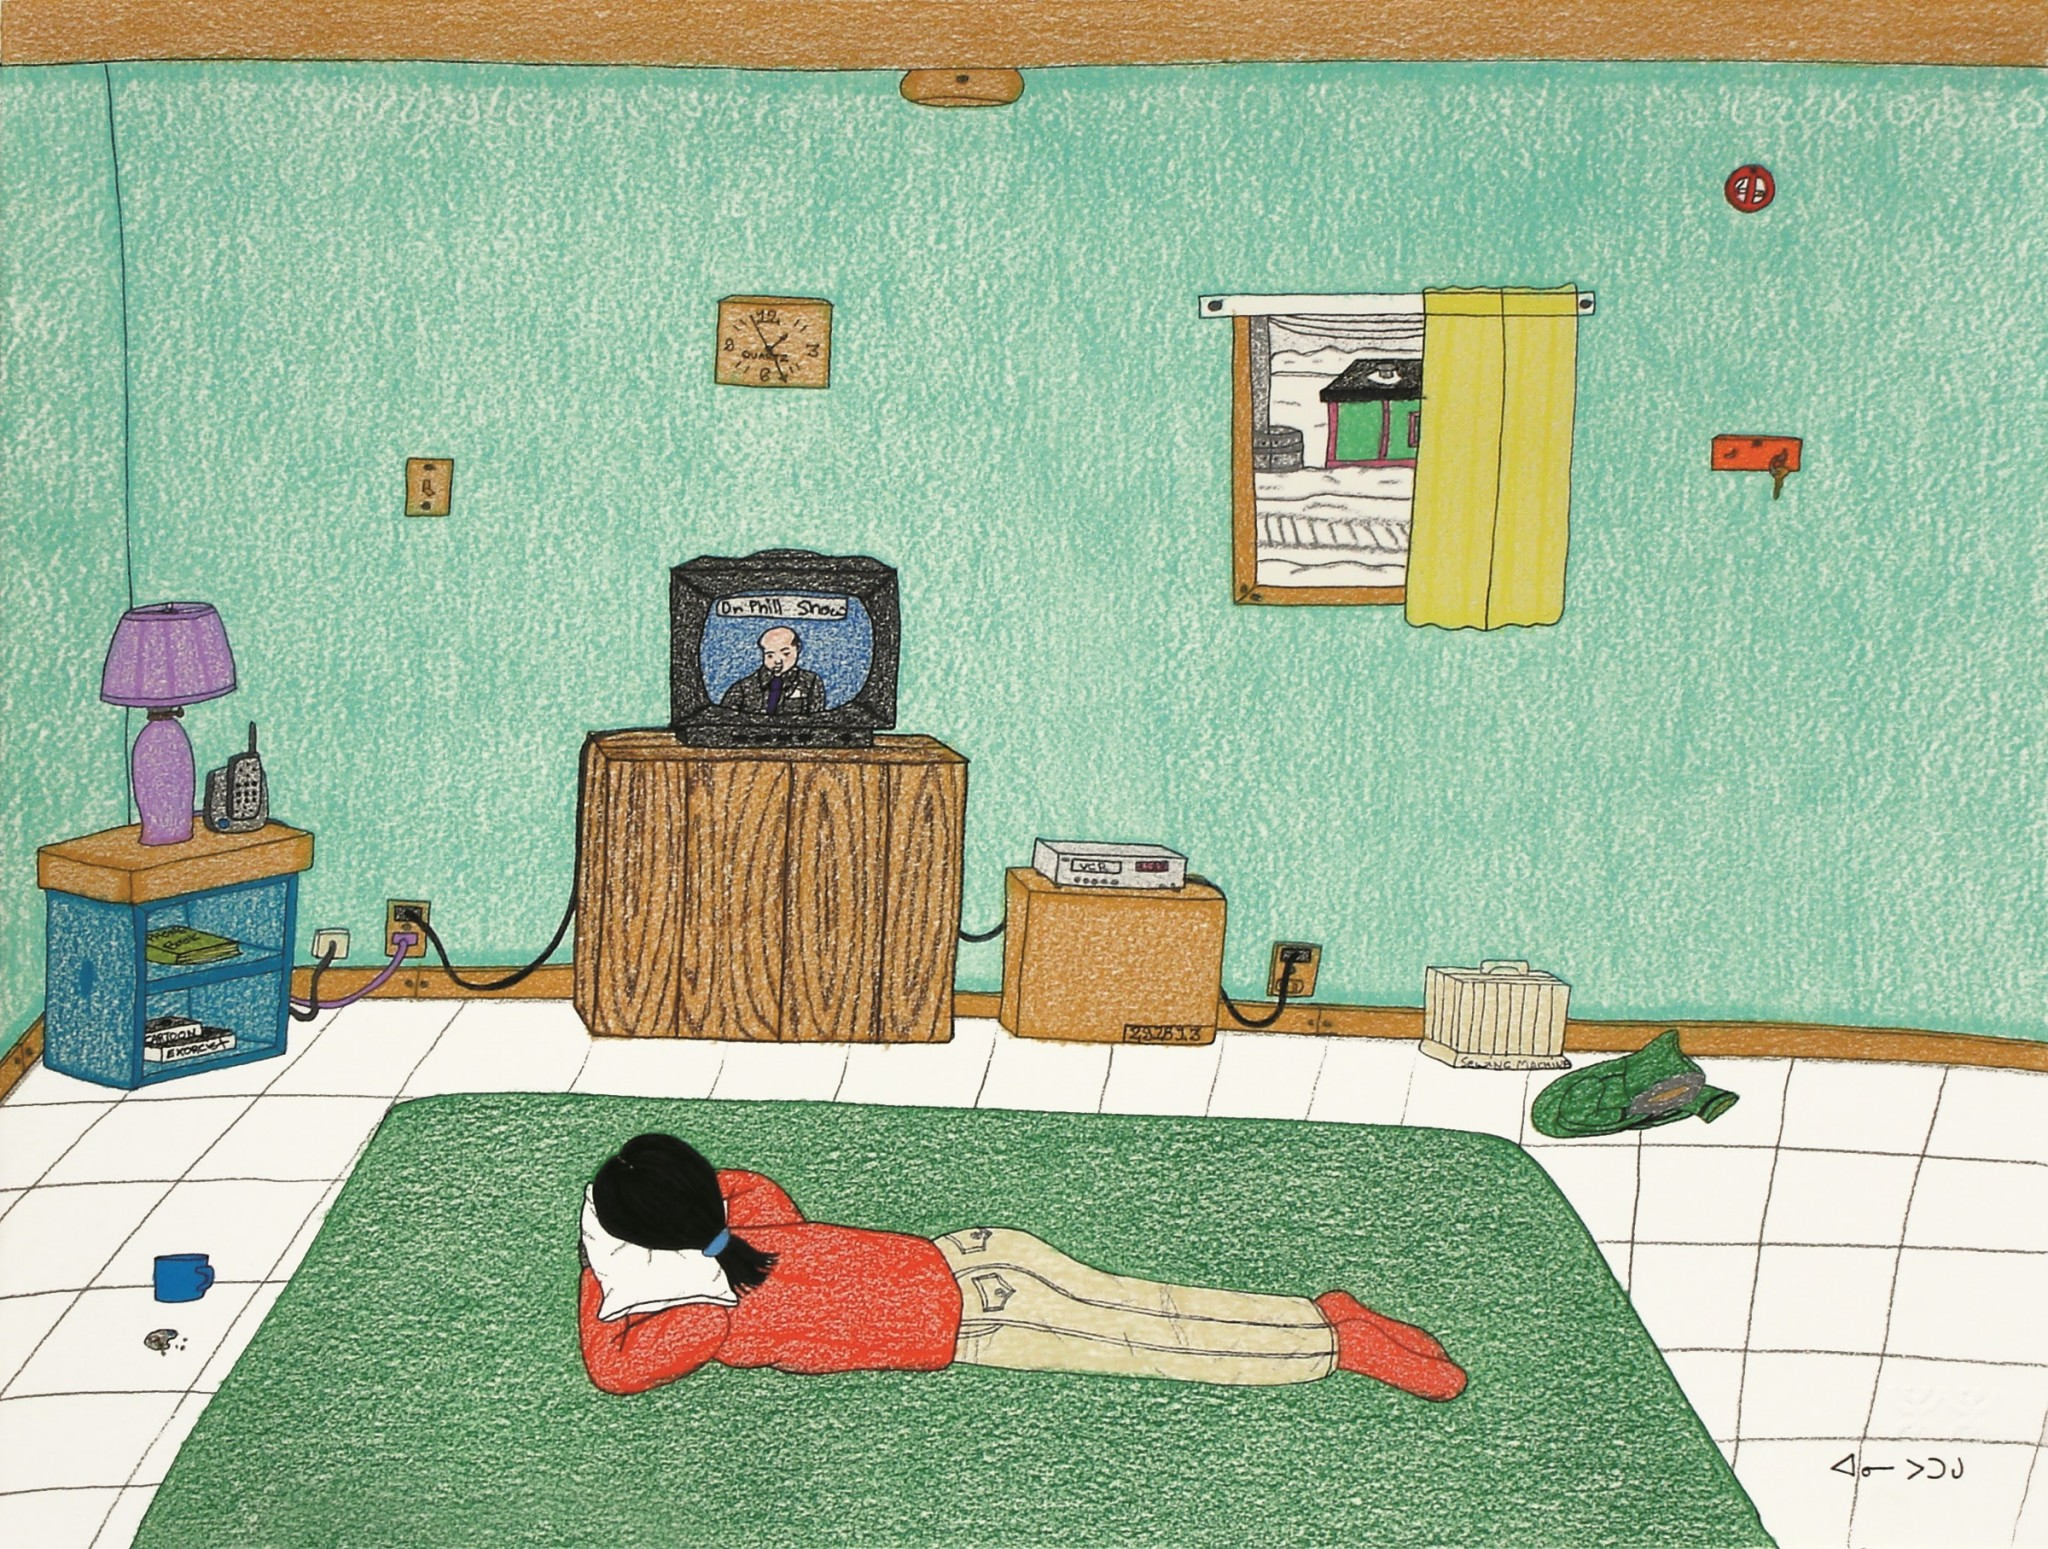 """Annie Pootoogook's """"Dr. Phil"""" Ink and pencil crayon on paper is among the works featured in Toledo Museum of Art's upcoming exhibition, """"Telling Stories: Resilience and Struggle in Contemporary Narrative Drawing."""" (Photo courtesy of the Toledo Museum of Art)"""